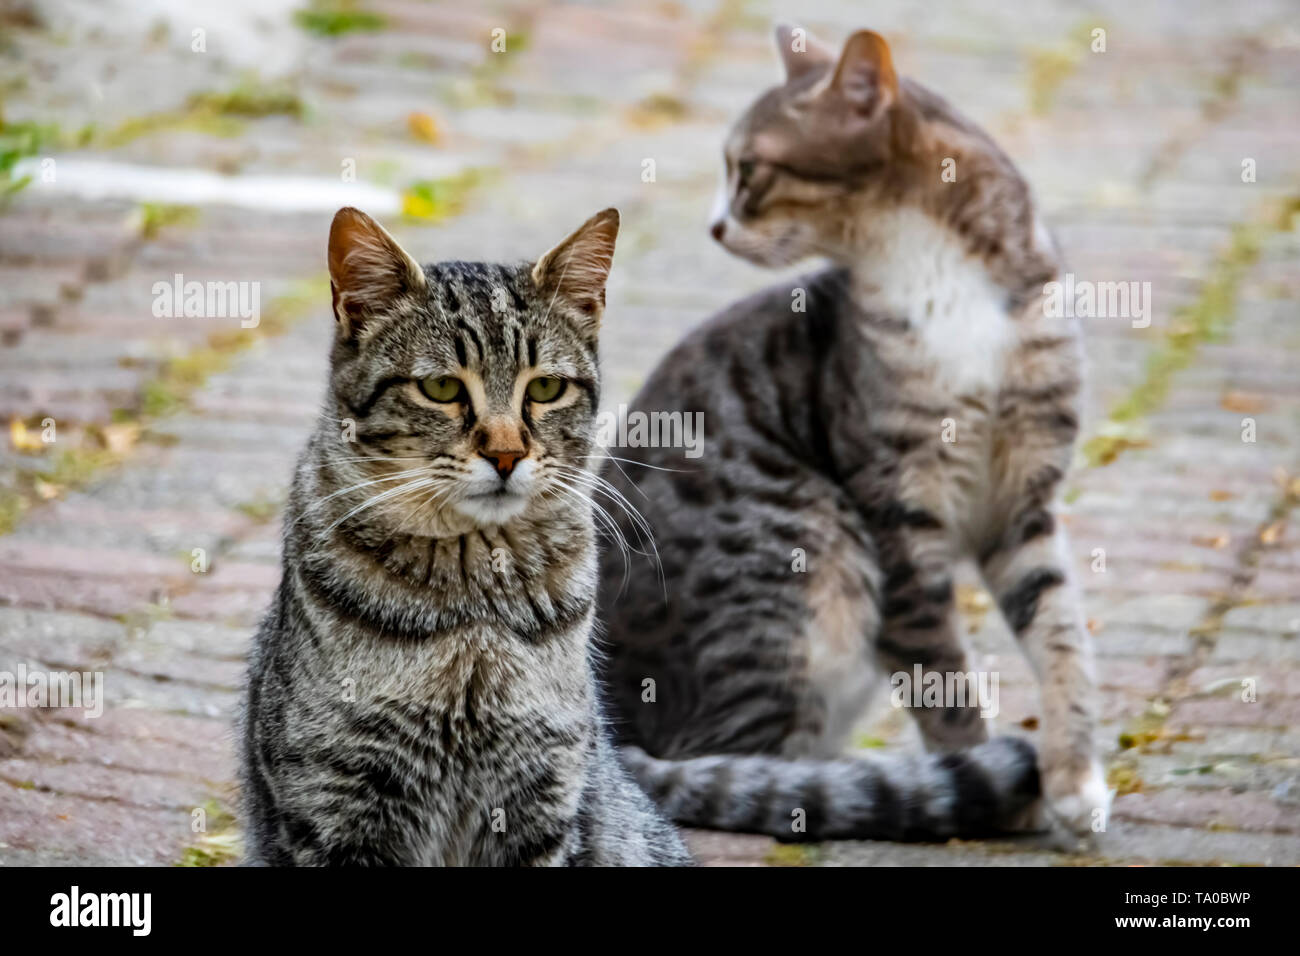 close up cute friends cats on car in nature - Stock Image